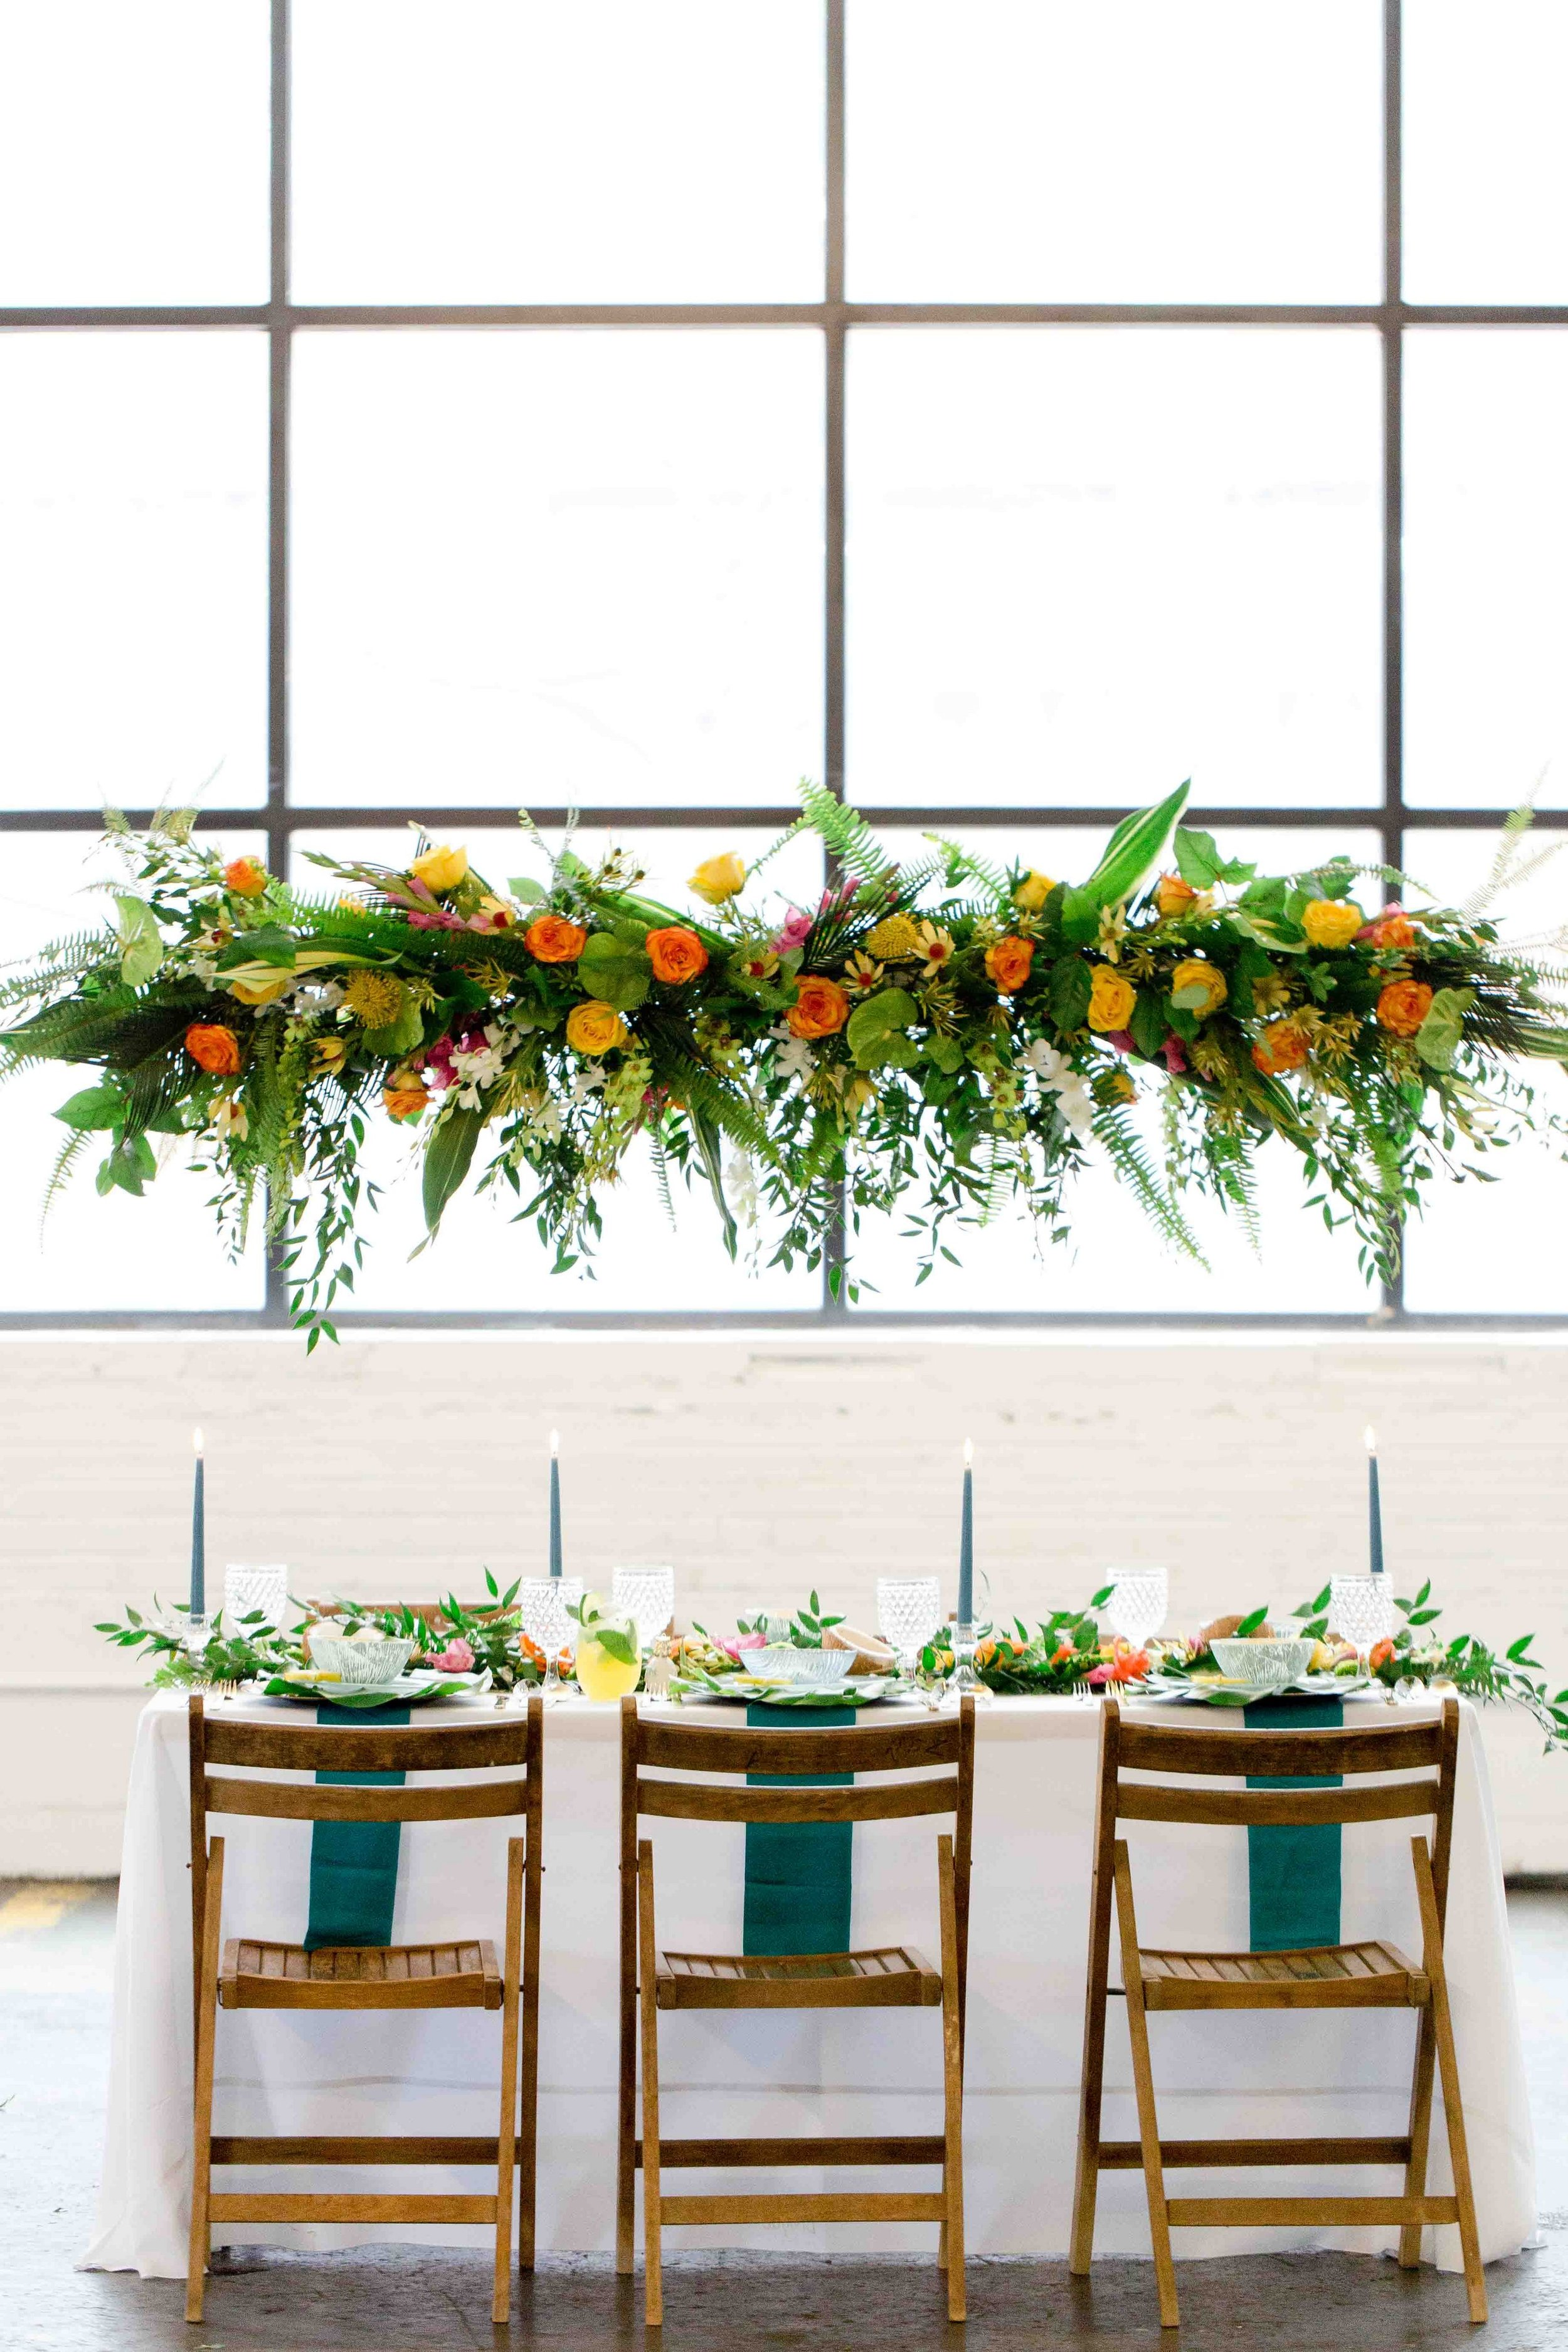 Tropical Romance with Vivid Vibes-Table Images-0187.jpg